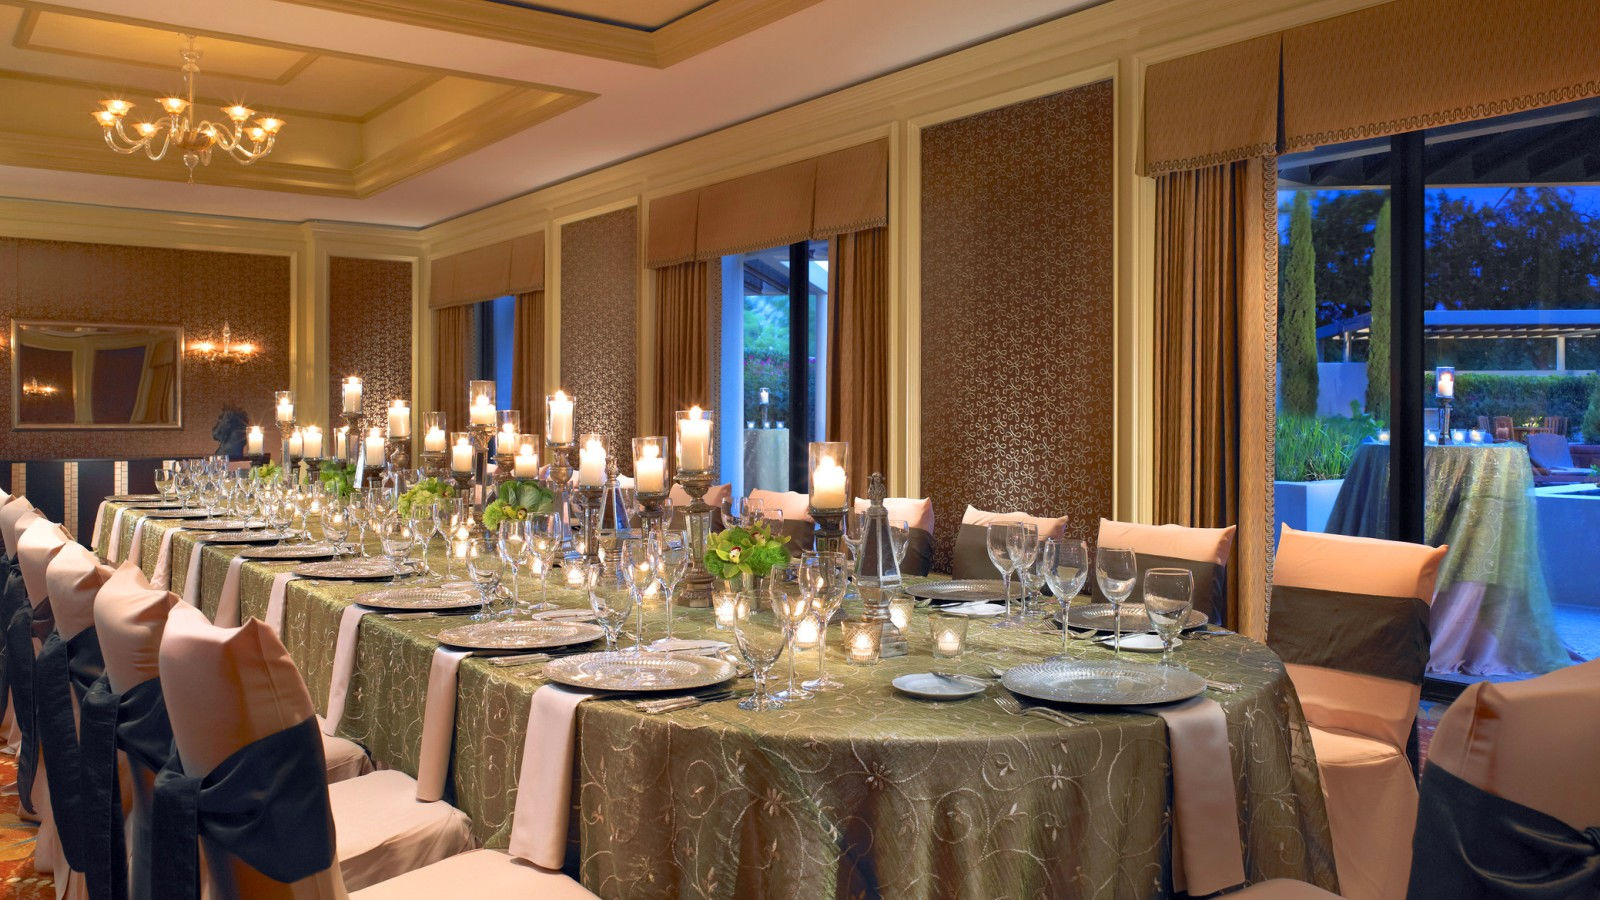 Luxury Wedding Venues in Houston - The Cuisine